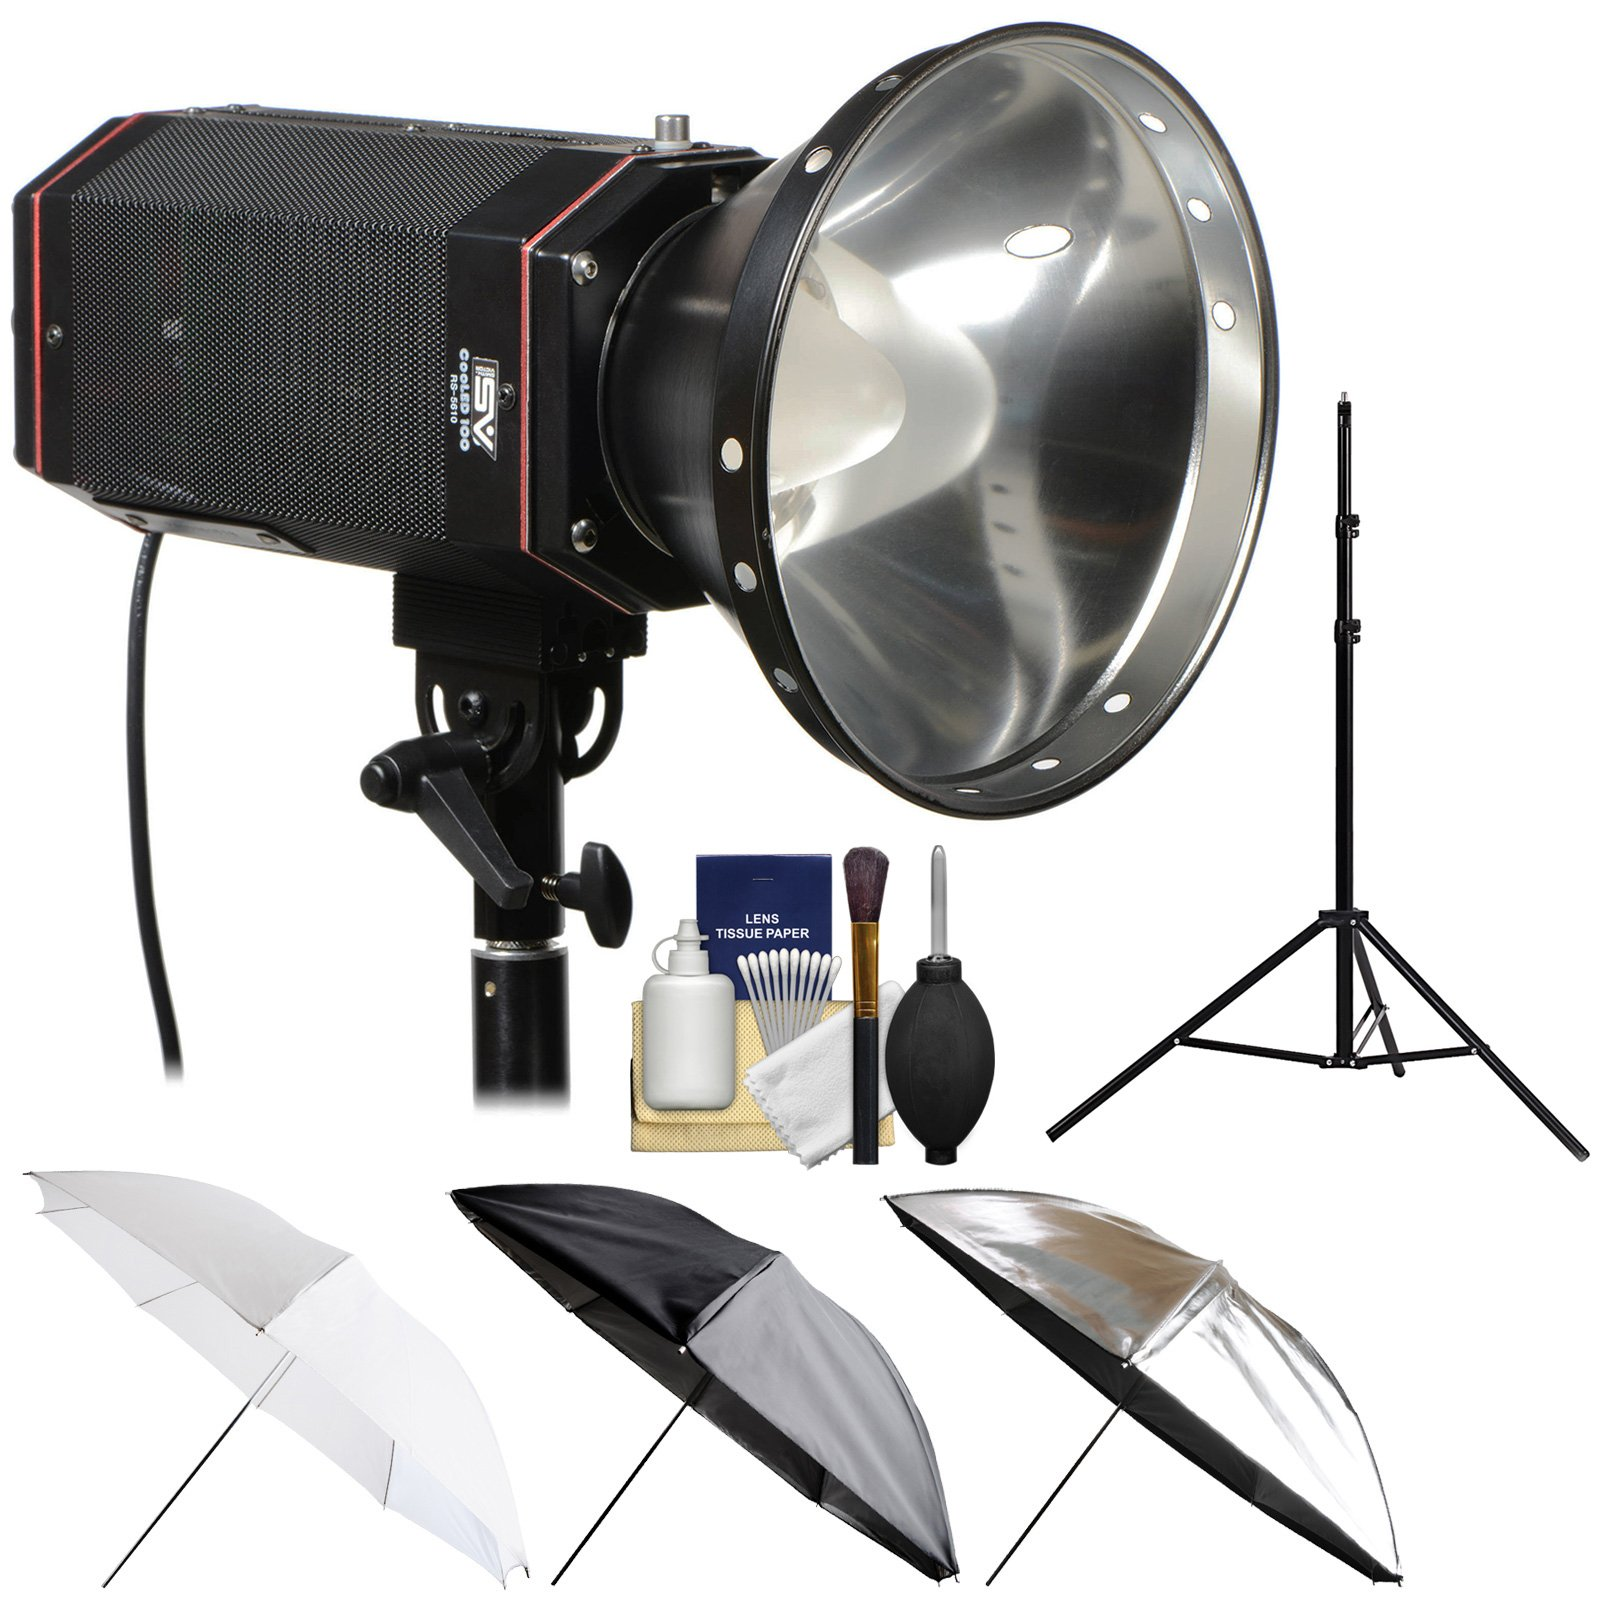 Smith-Victor CooLED100 100W Portable LED Studio Light with Light Stand + 3-in-1 Umbrella Kit